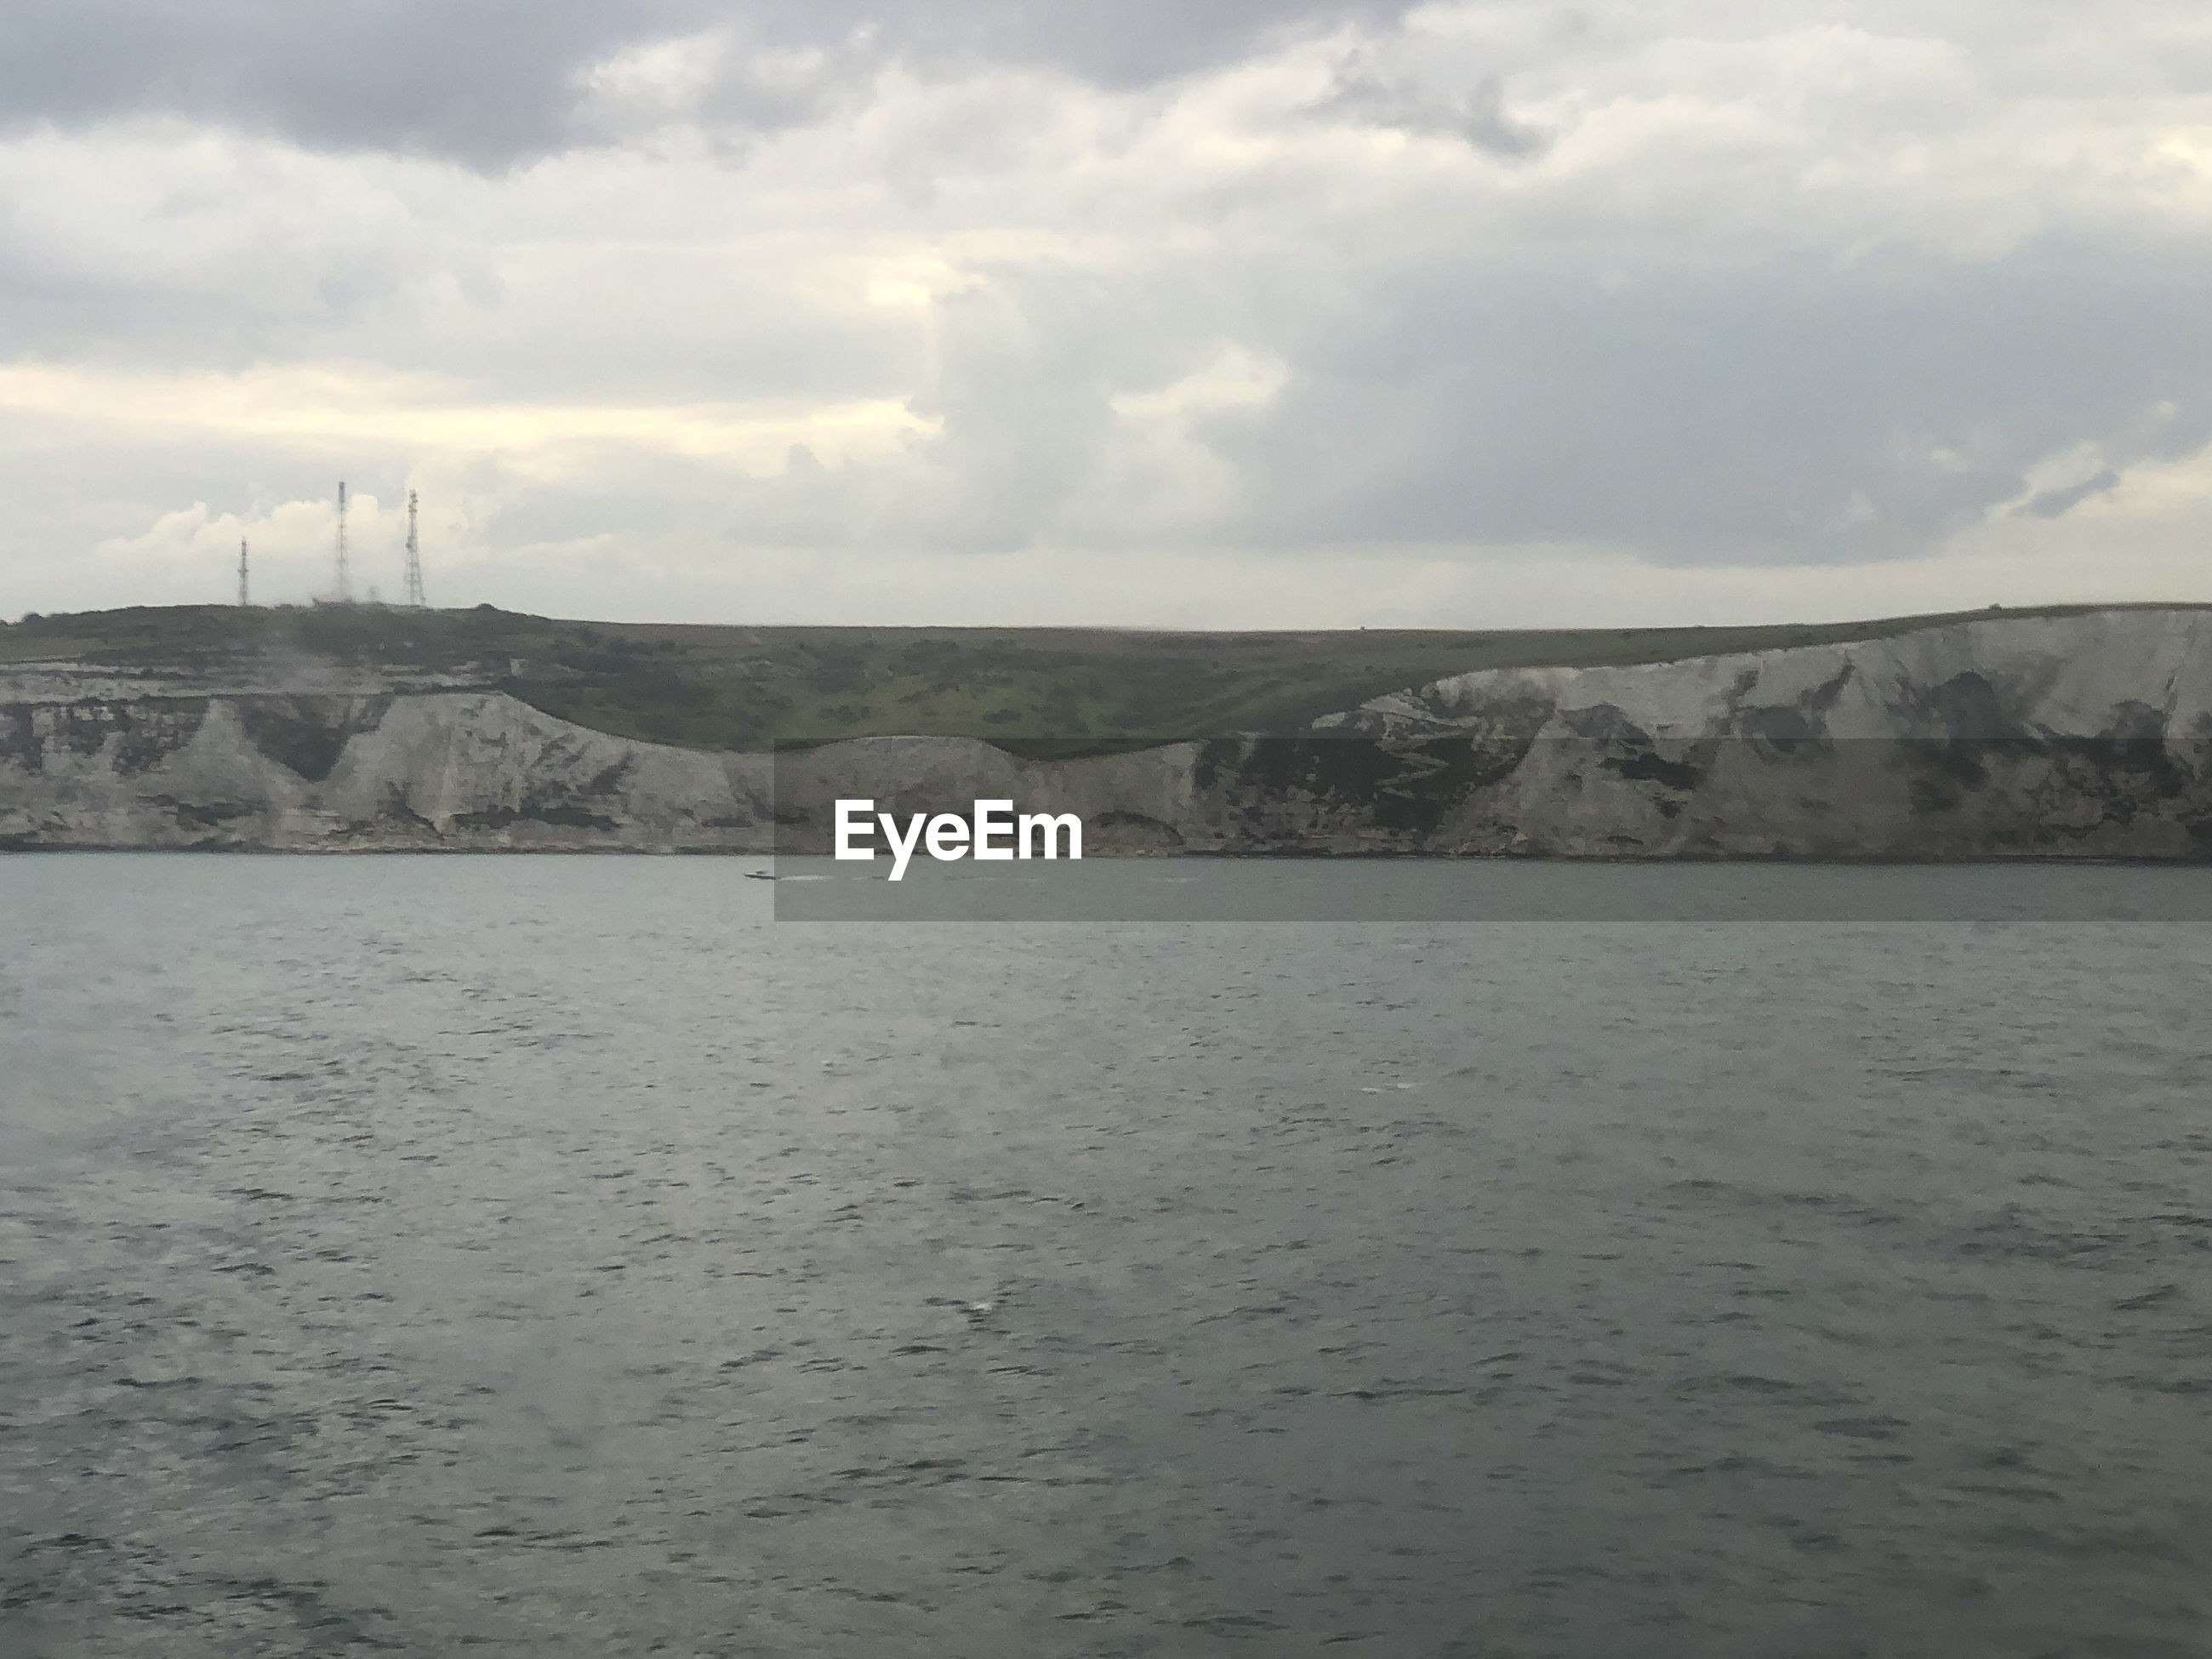 SCENIC VIEW OF SEA AND LAND AGAINST SKY